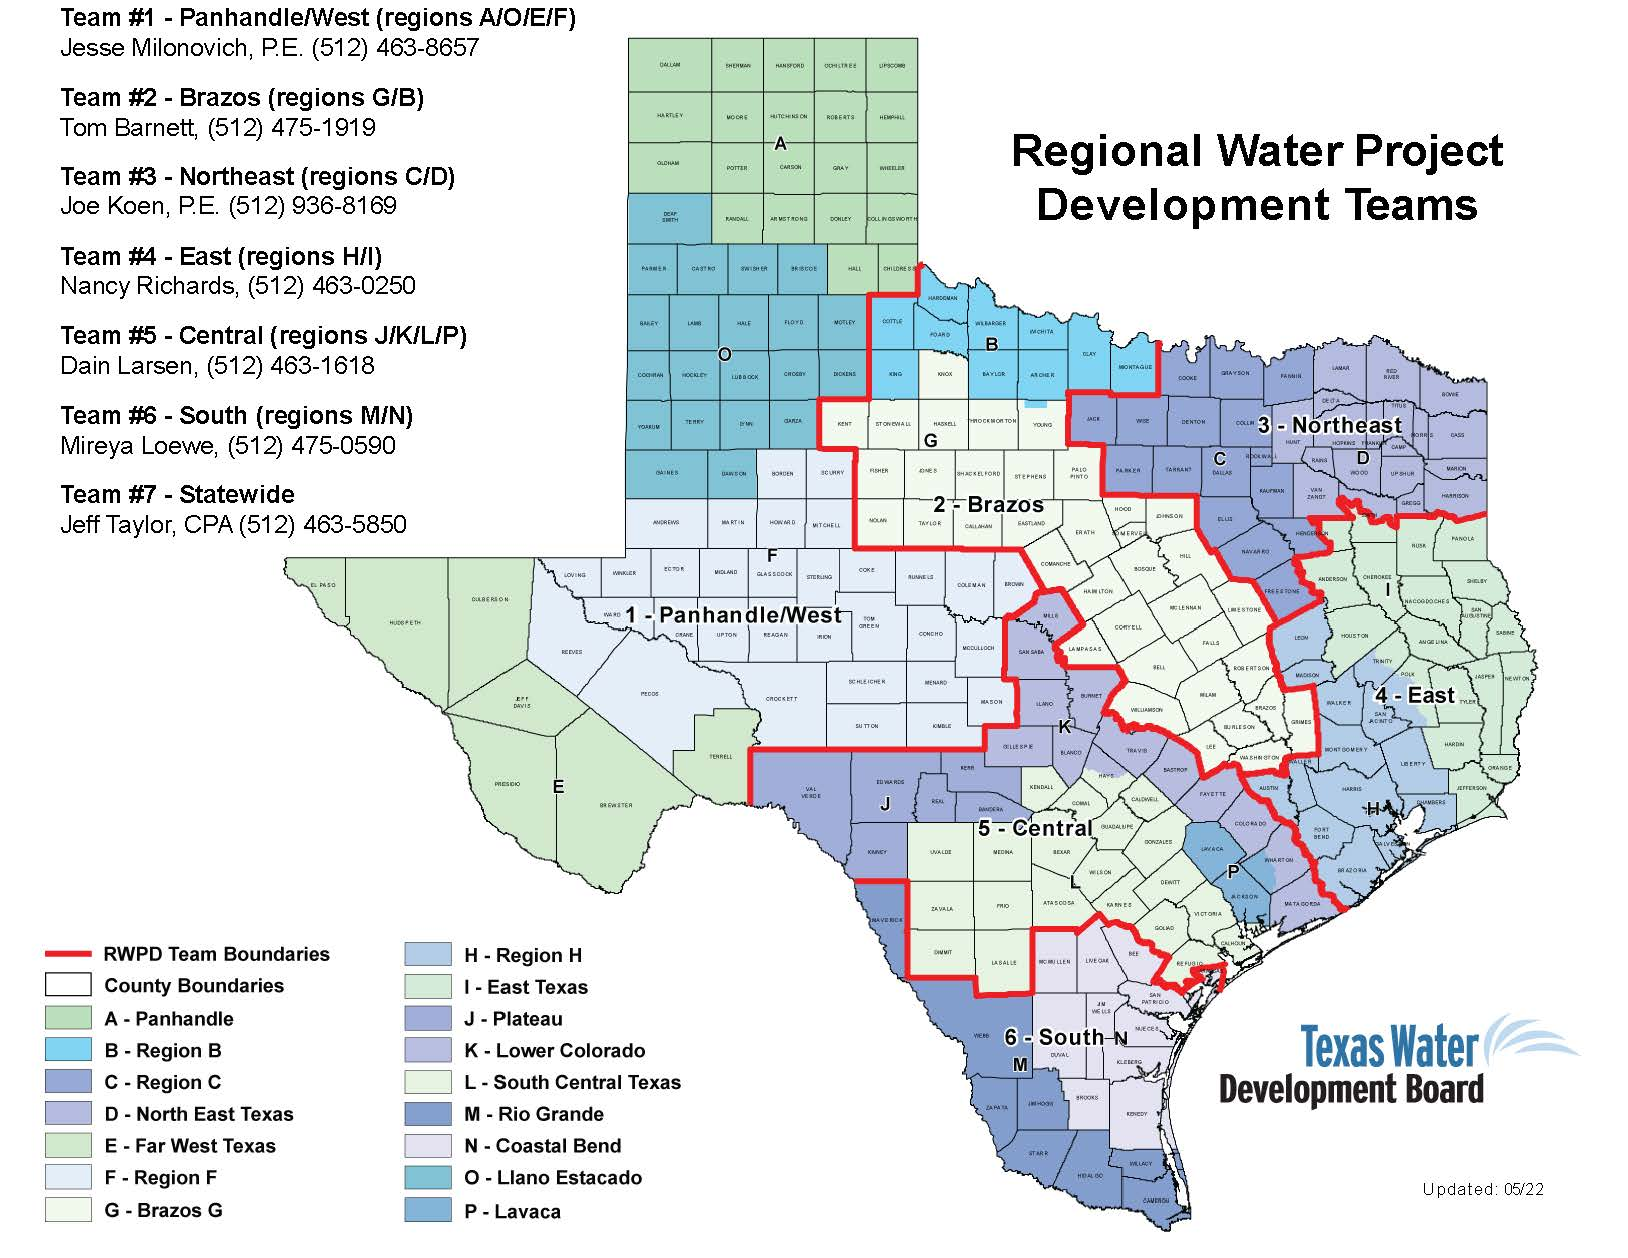 Regional Water Planning and Development Teams